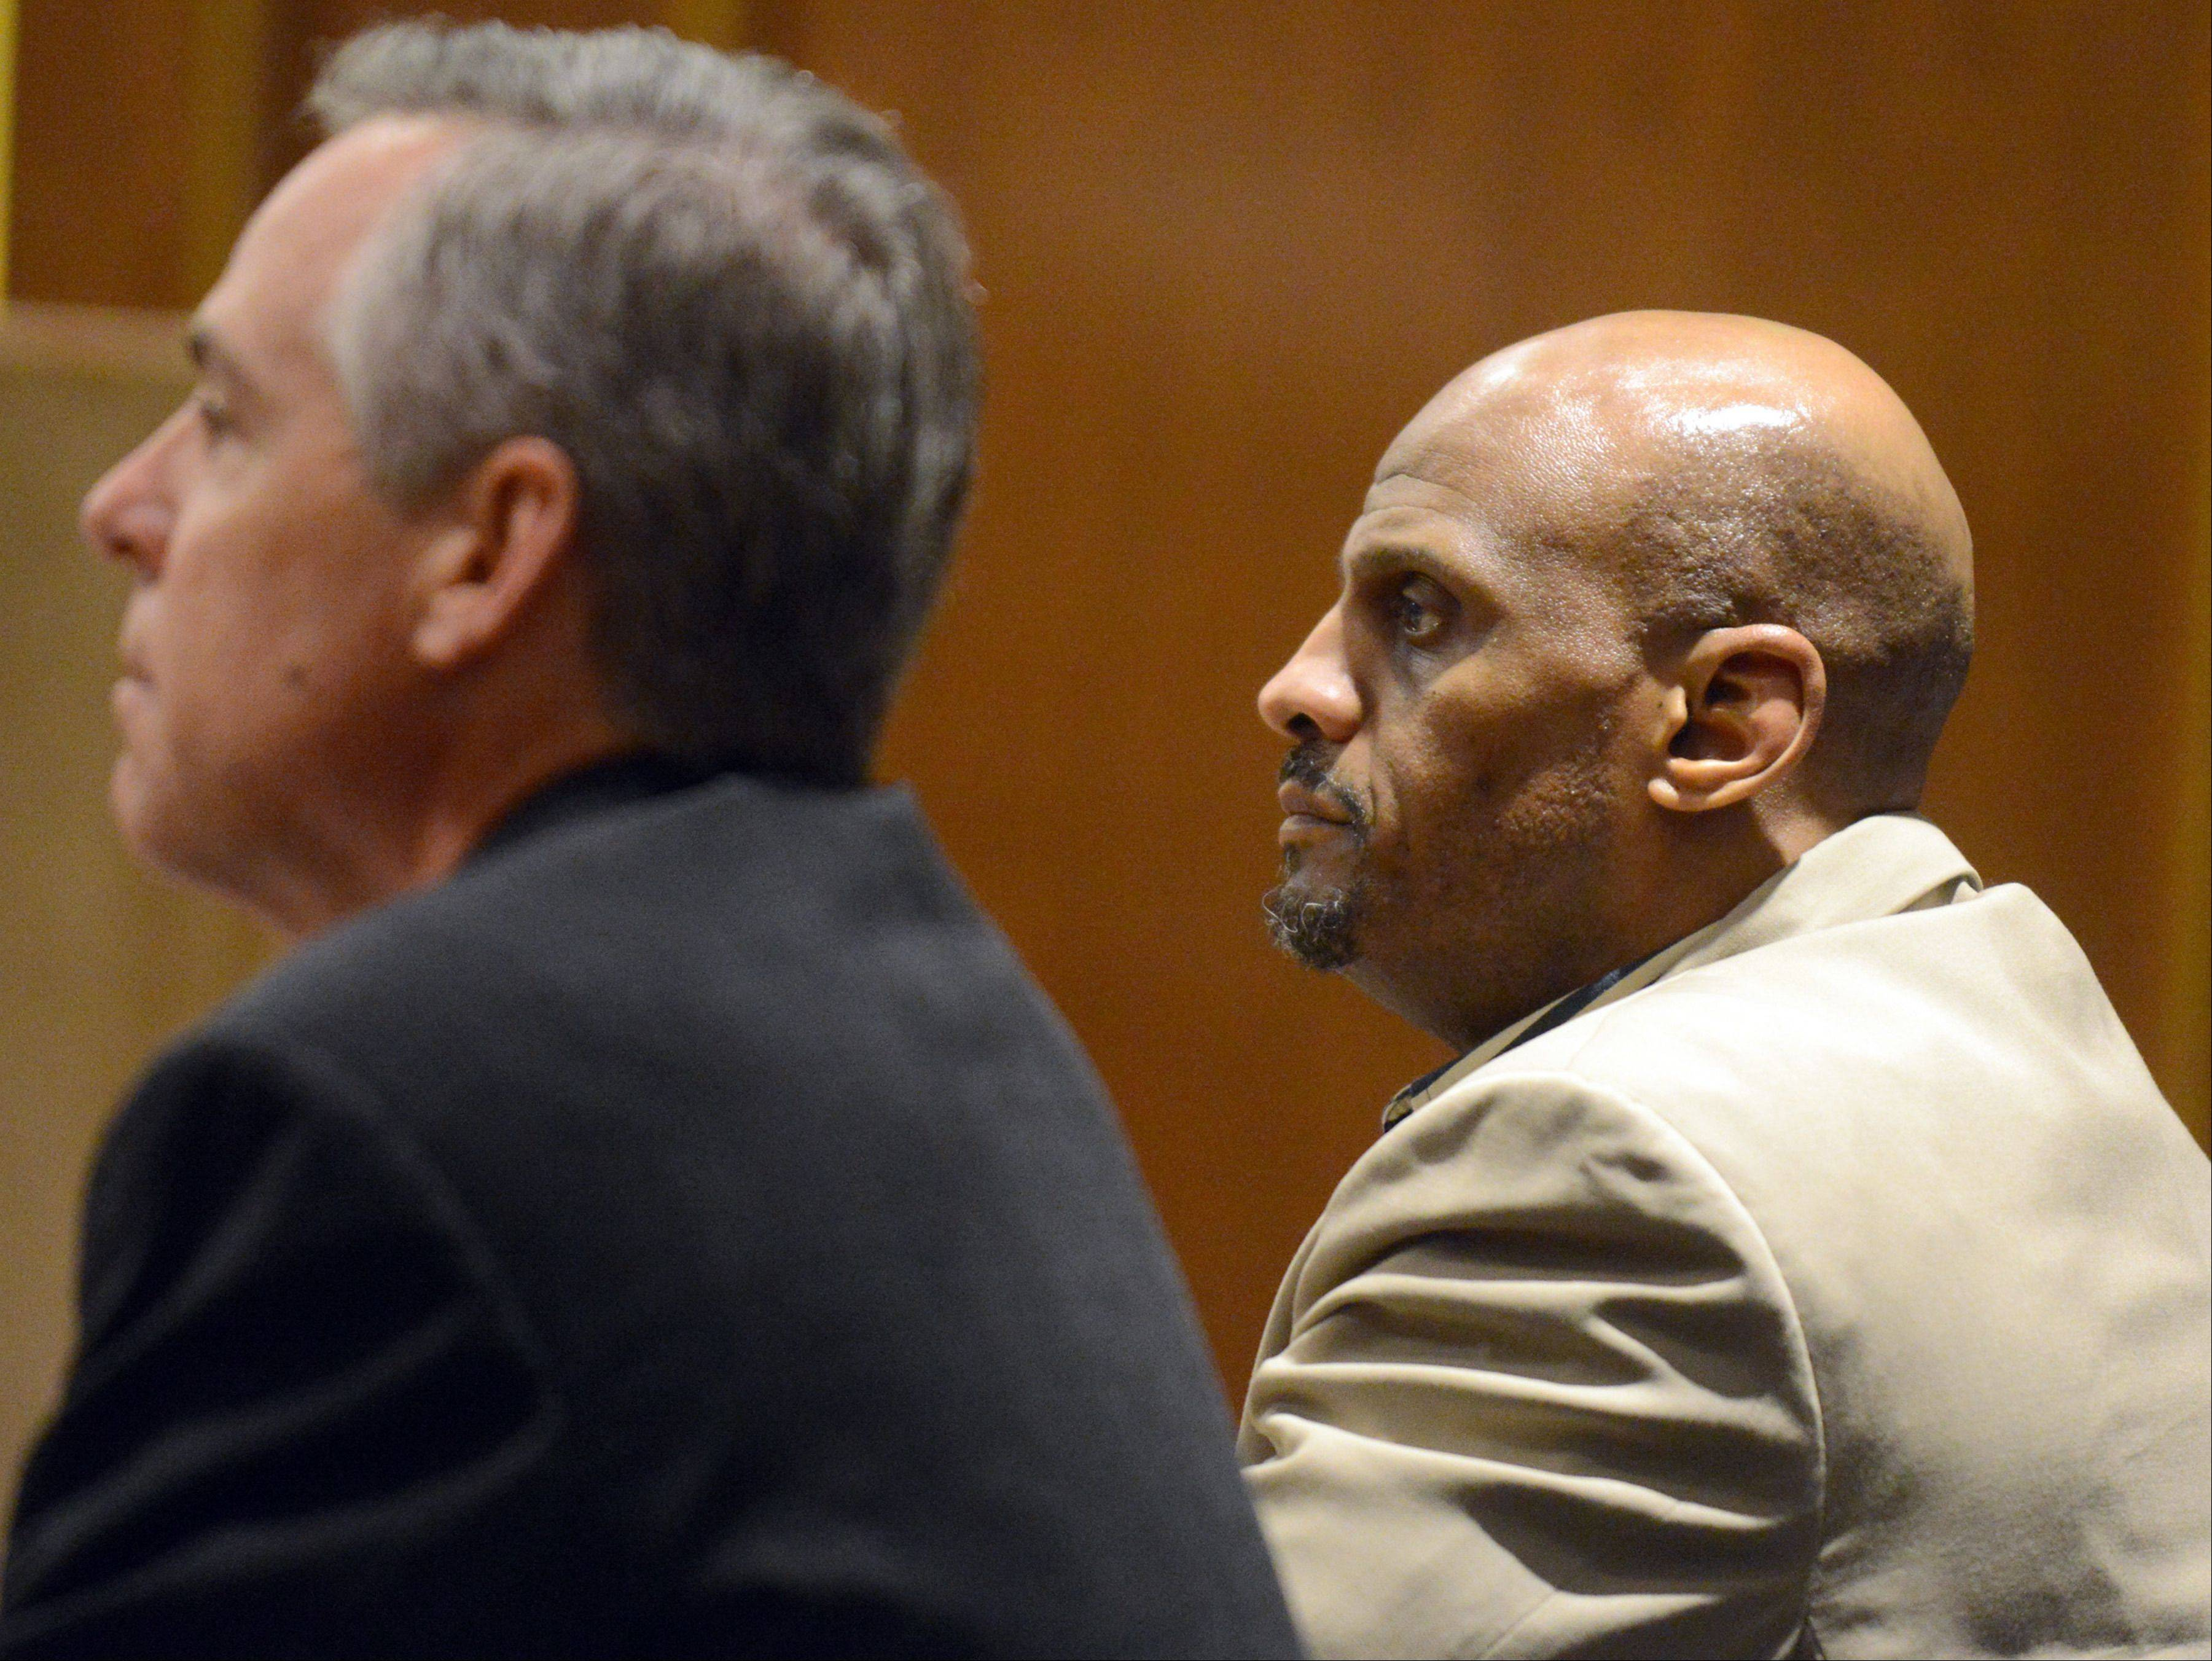 POOL/Sun-Times Media, Thomas Delany Jr. James Ealy, of Lake Villa, during his murder trial in May.